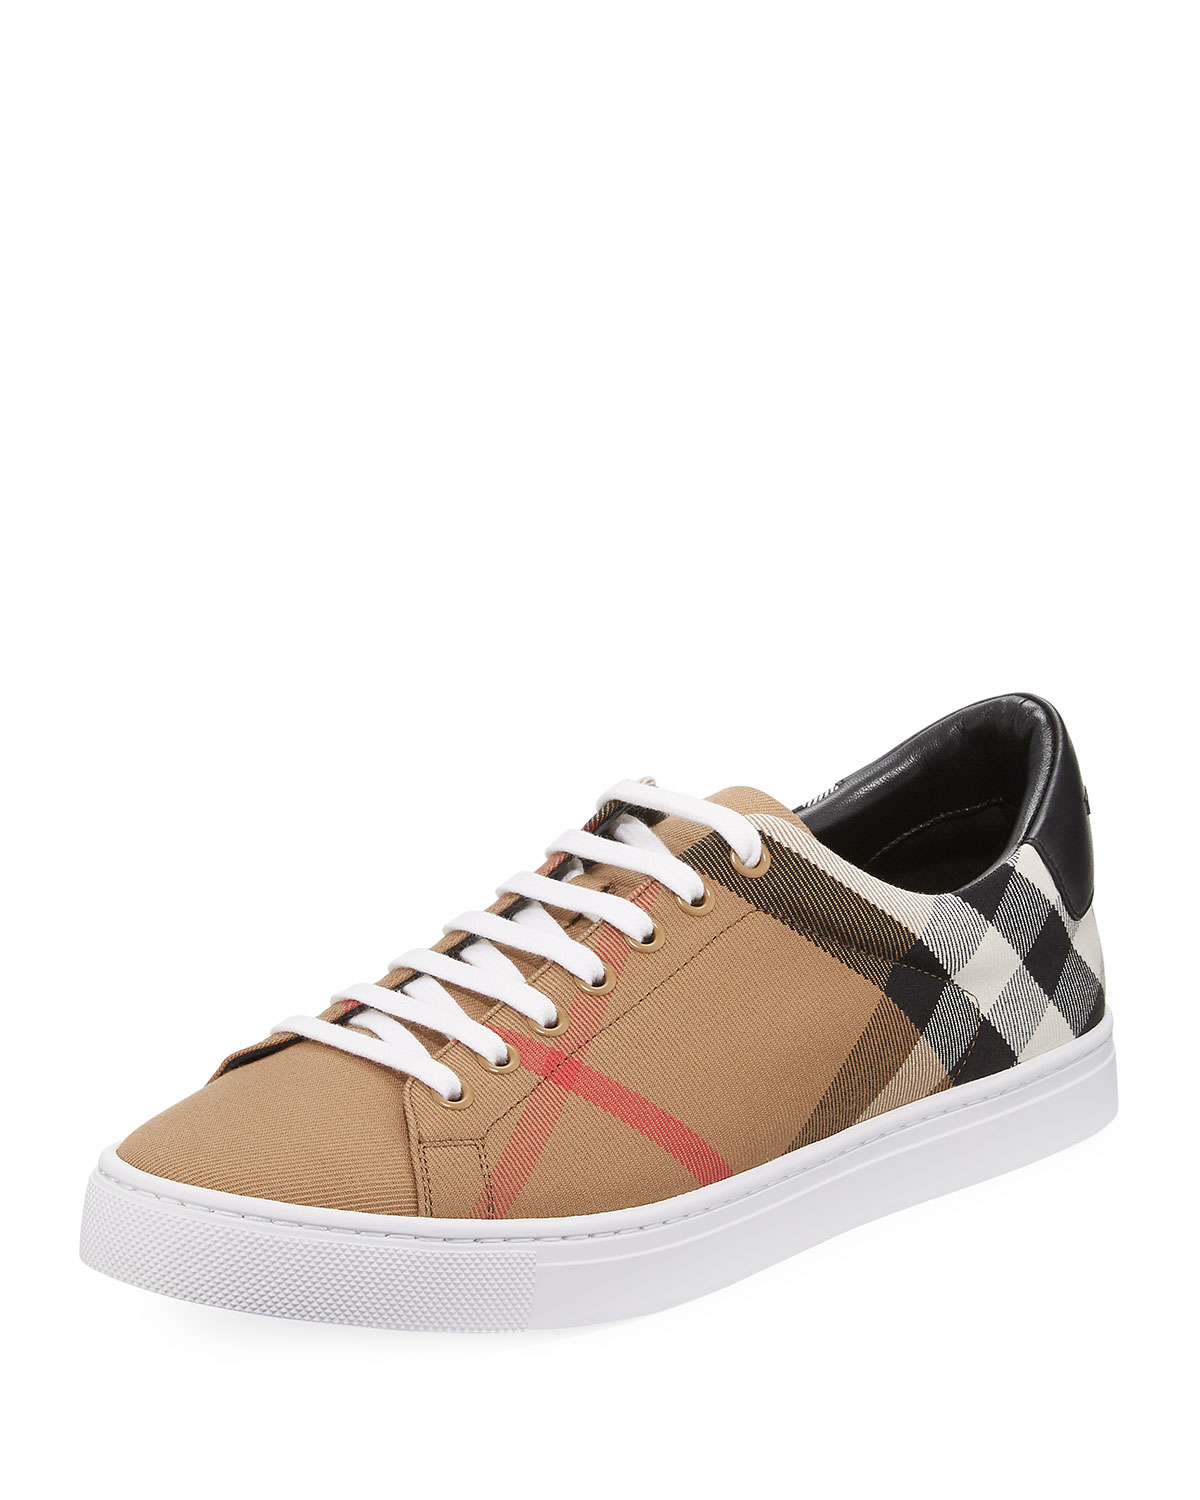 b05a9d2be Burberry Albert House Check & Leather Low-Top Sneaker | Neiman Marcus